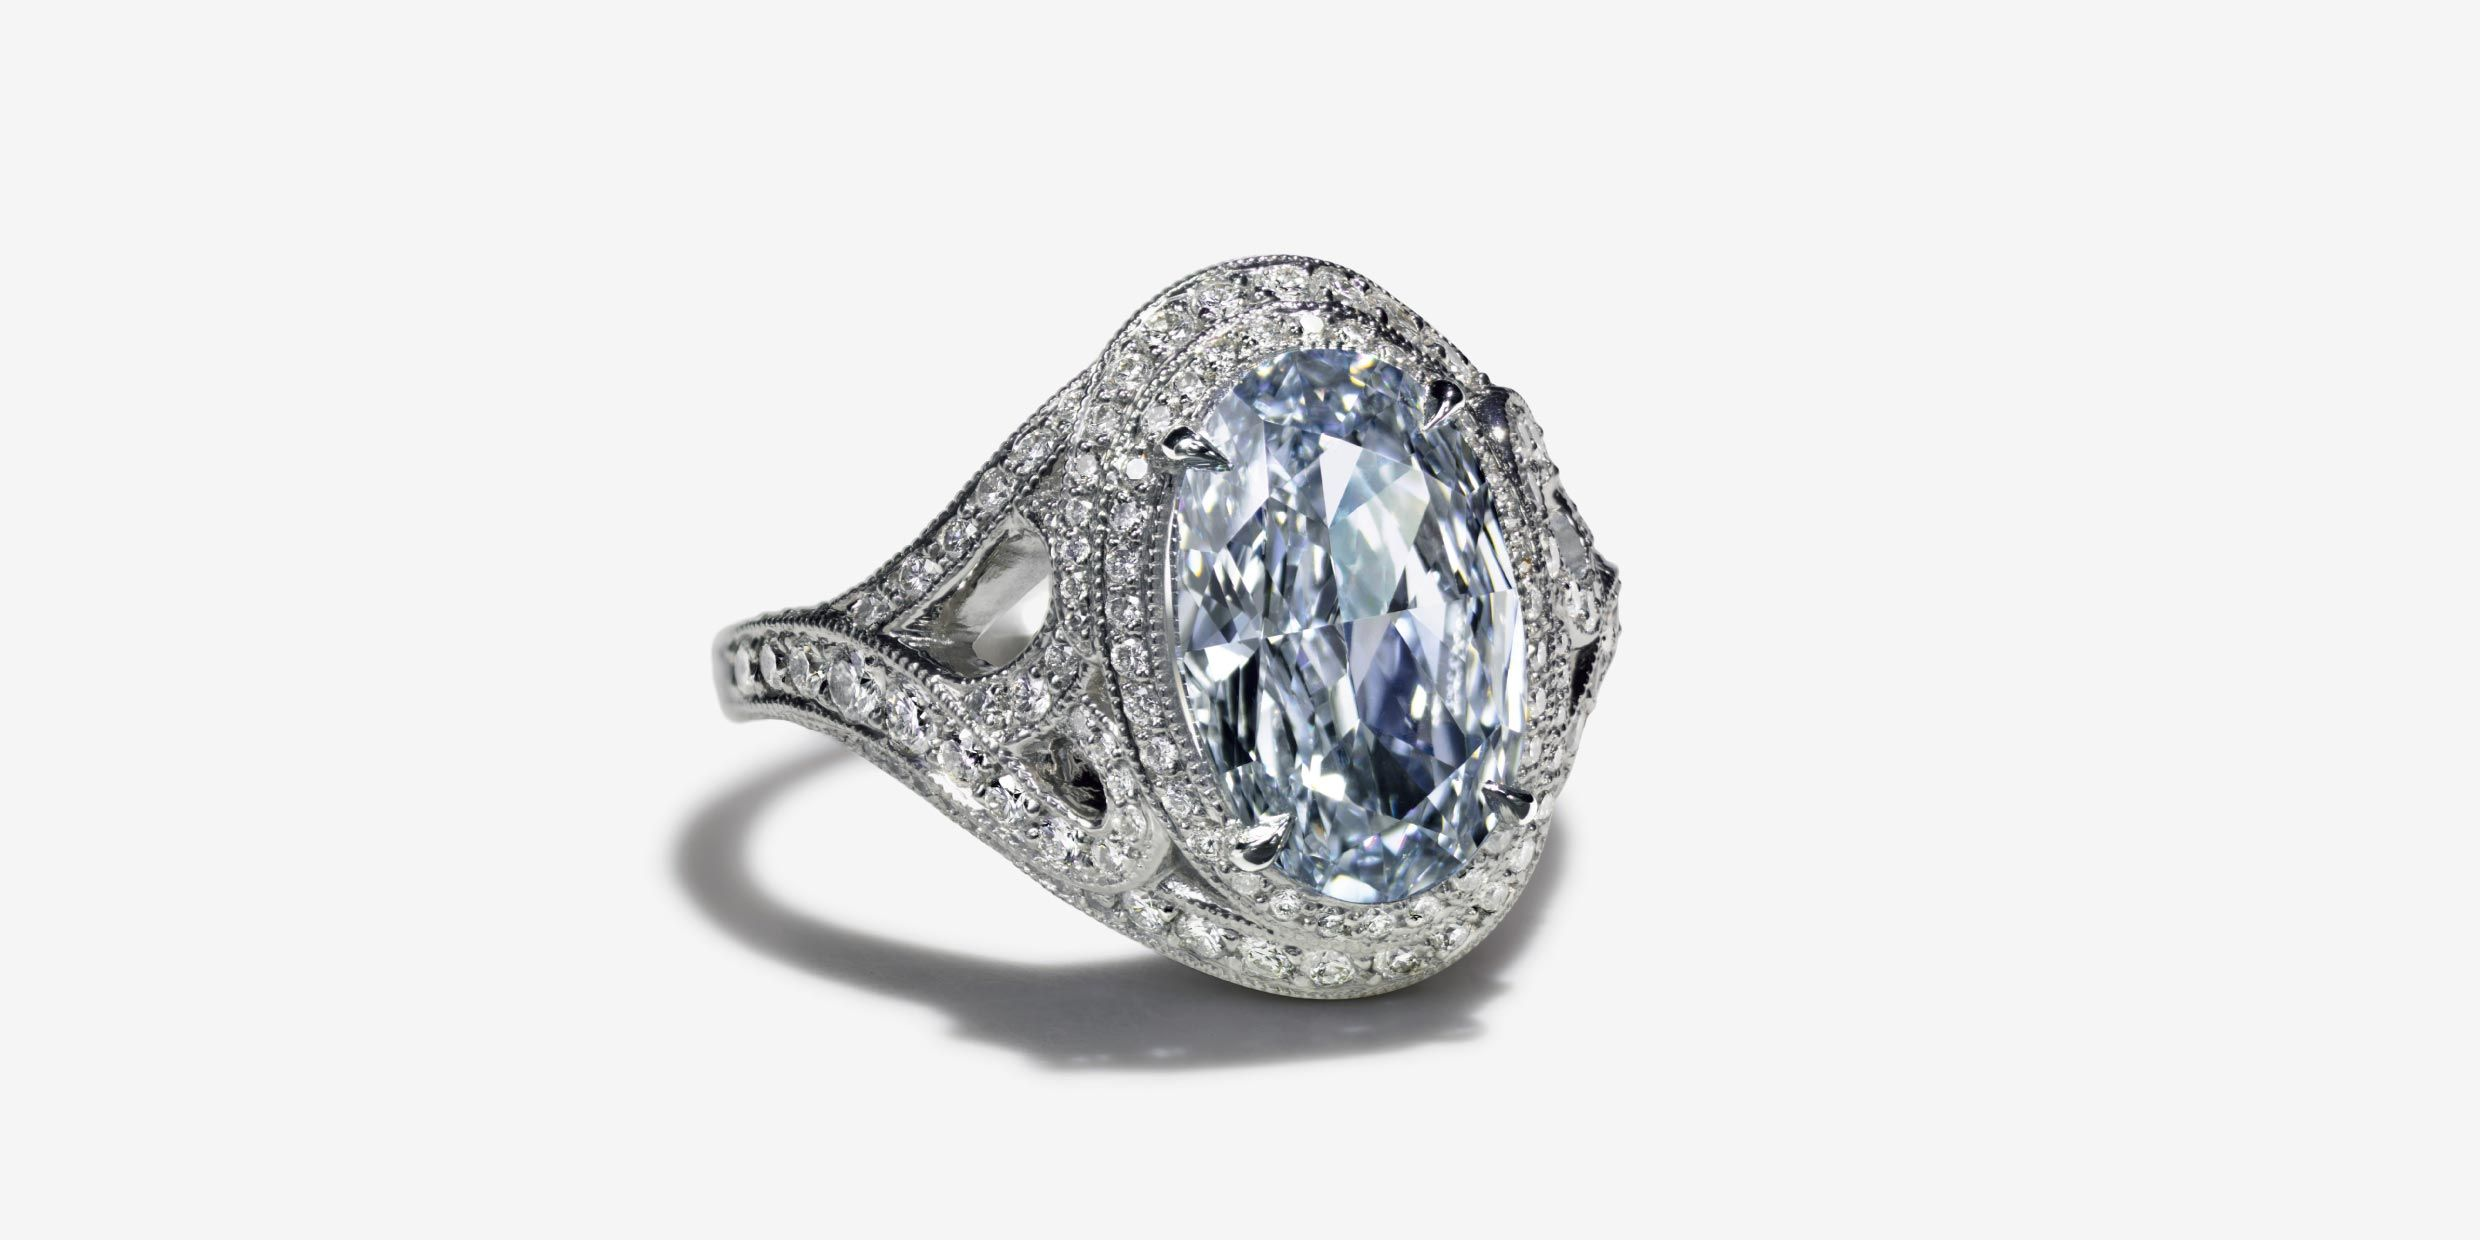 2c70a0df4 Wave ring in platinum with a 3.03-carat Fancy Intense Blue diamond. |  Tiffany & Co.